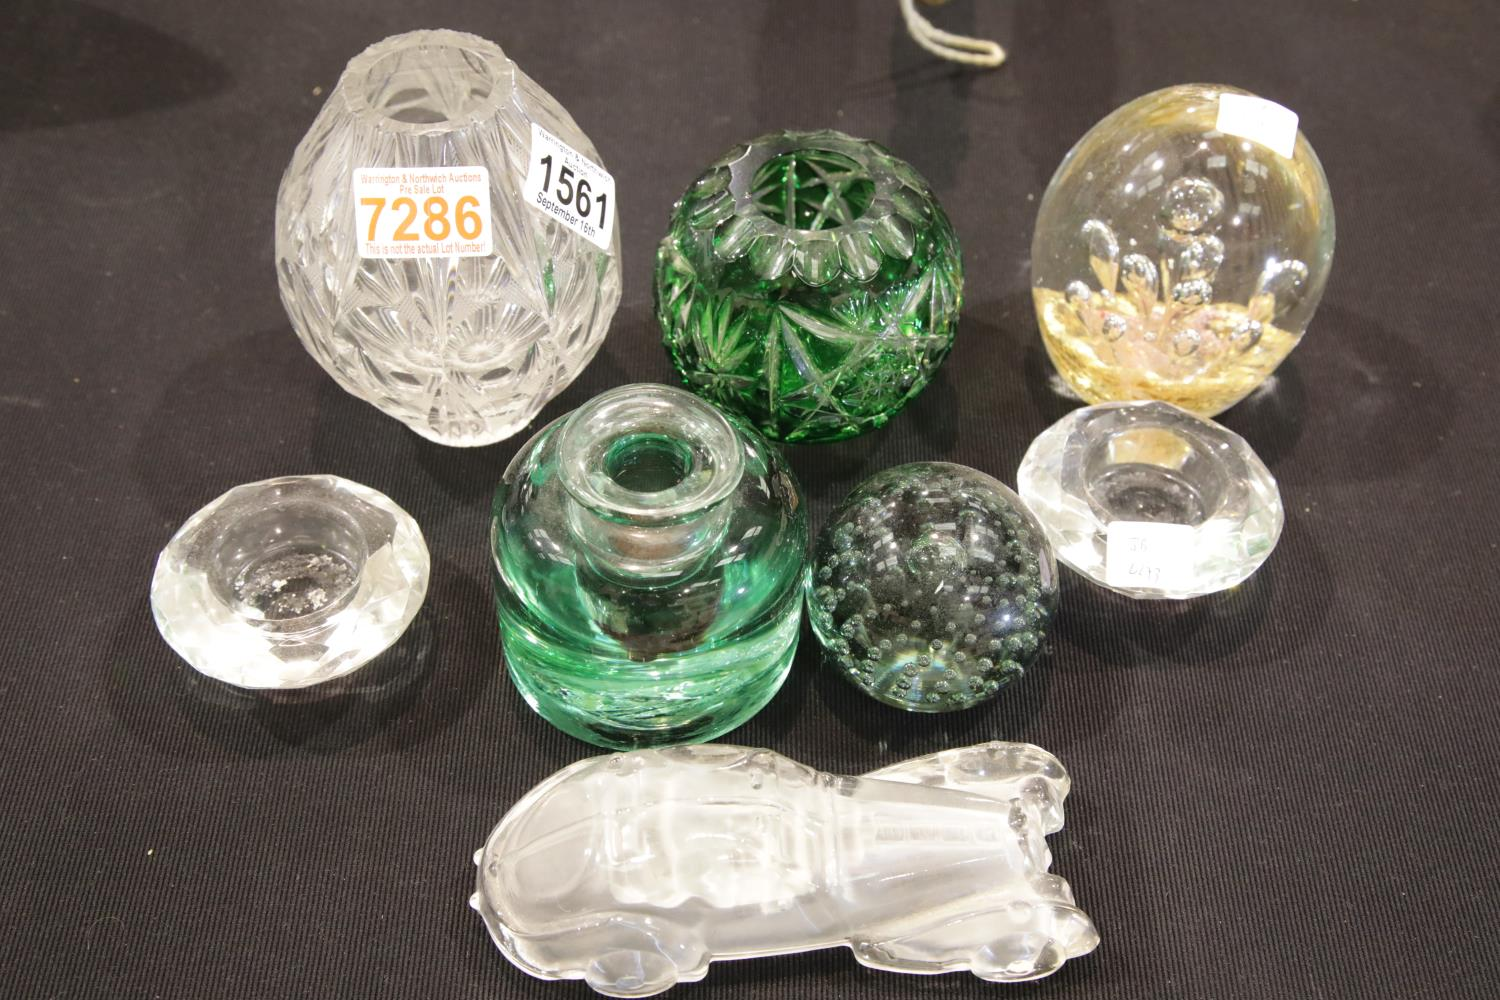 Lot 1561 - Mixed glass including paperweights and a Victorian inkwell, tallest H: 14 cm. P&P Group 3 (£25+VAT